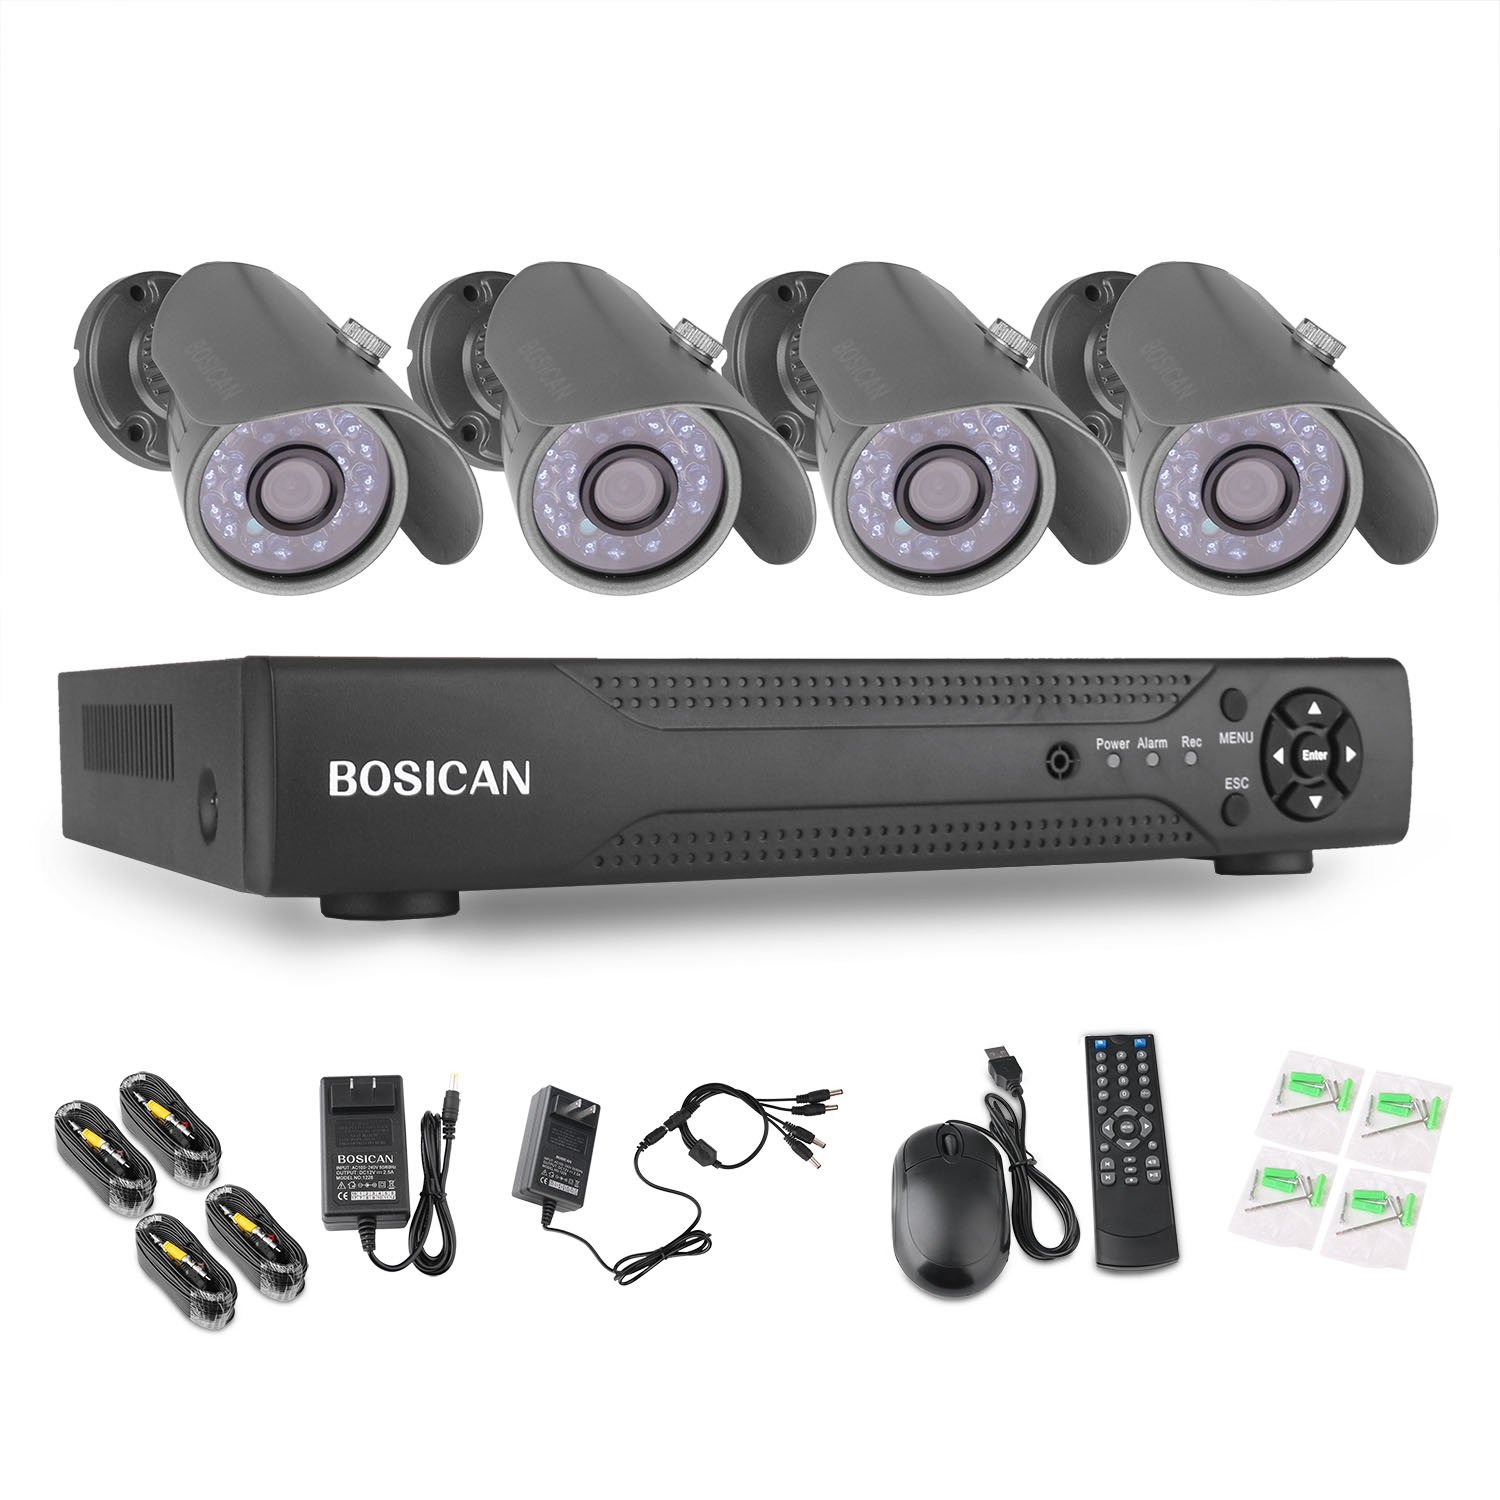 BOSICAN 8CH Surveillance DVR Kits with 4 Bullet Surveillance Cameras HD Security System 4 Indoor/Outdoor Waterproof 1000TVL Night Vision Security Cameras Support Smartphone View Remote Access